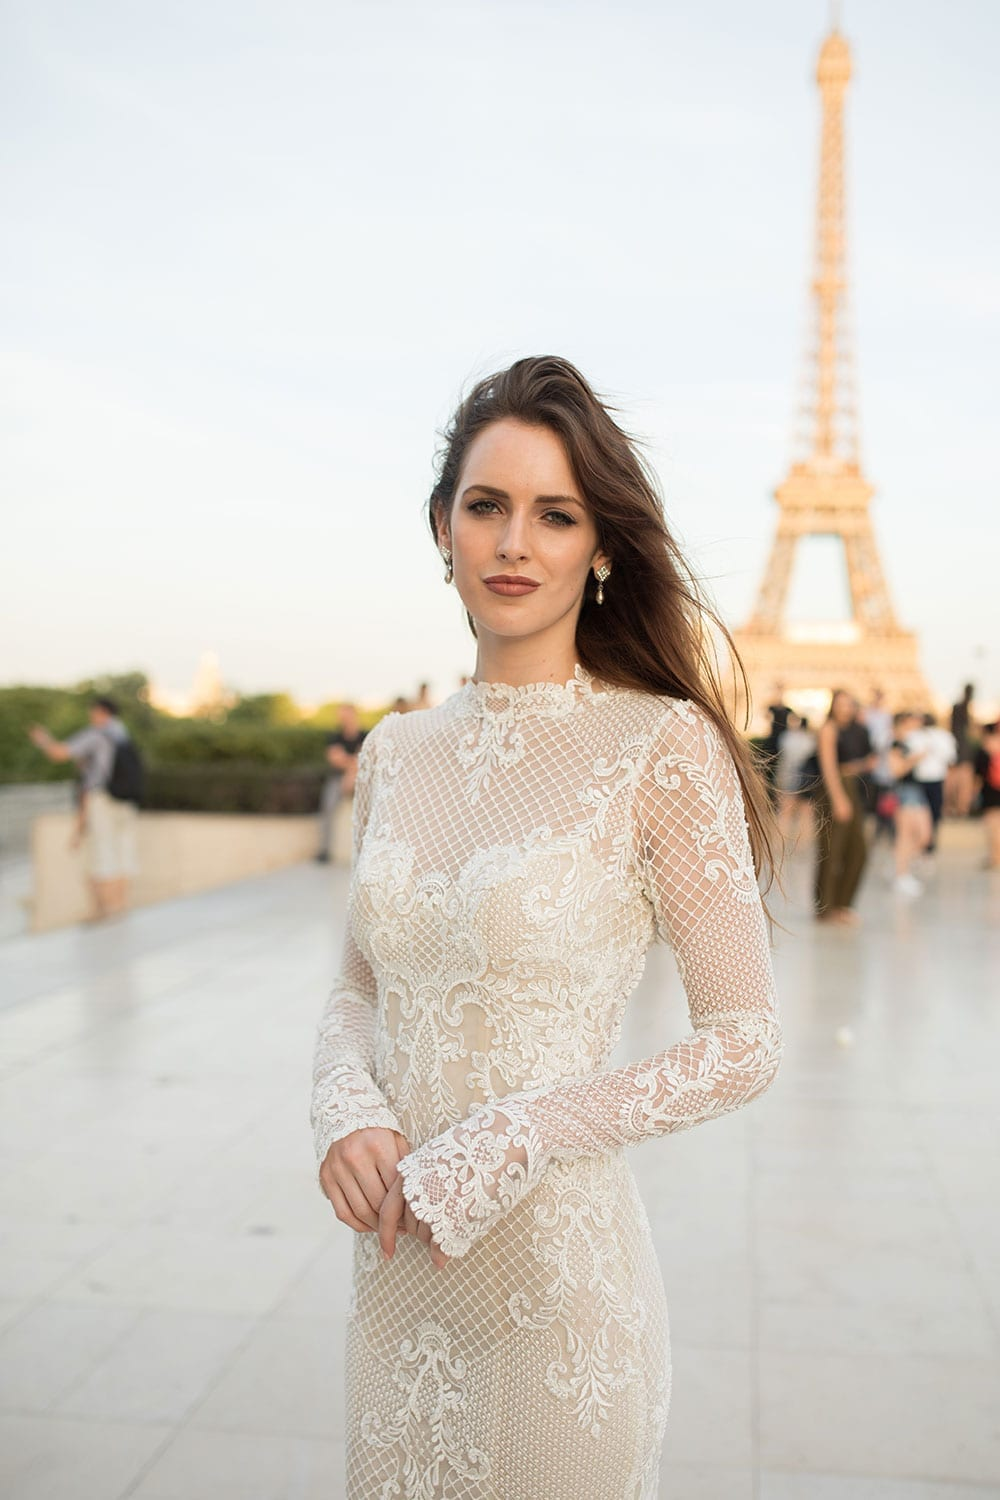 Model wearing Vinka Design Hayley Wedding Dress, a Backless Long Sleeve Lace Wedding Gown in front of the Eiffel Tower in Paris